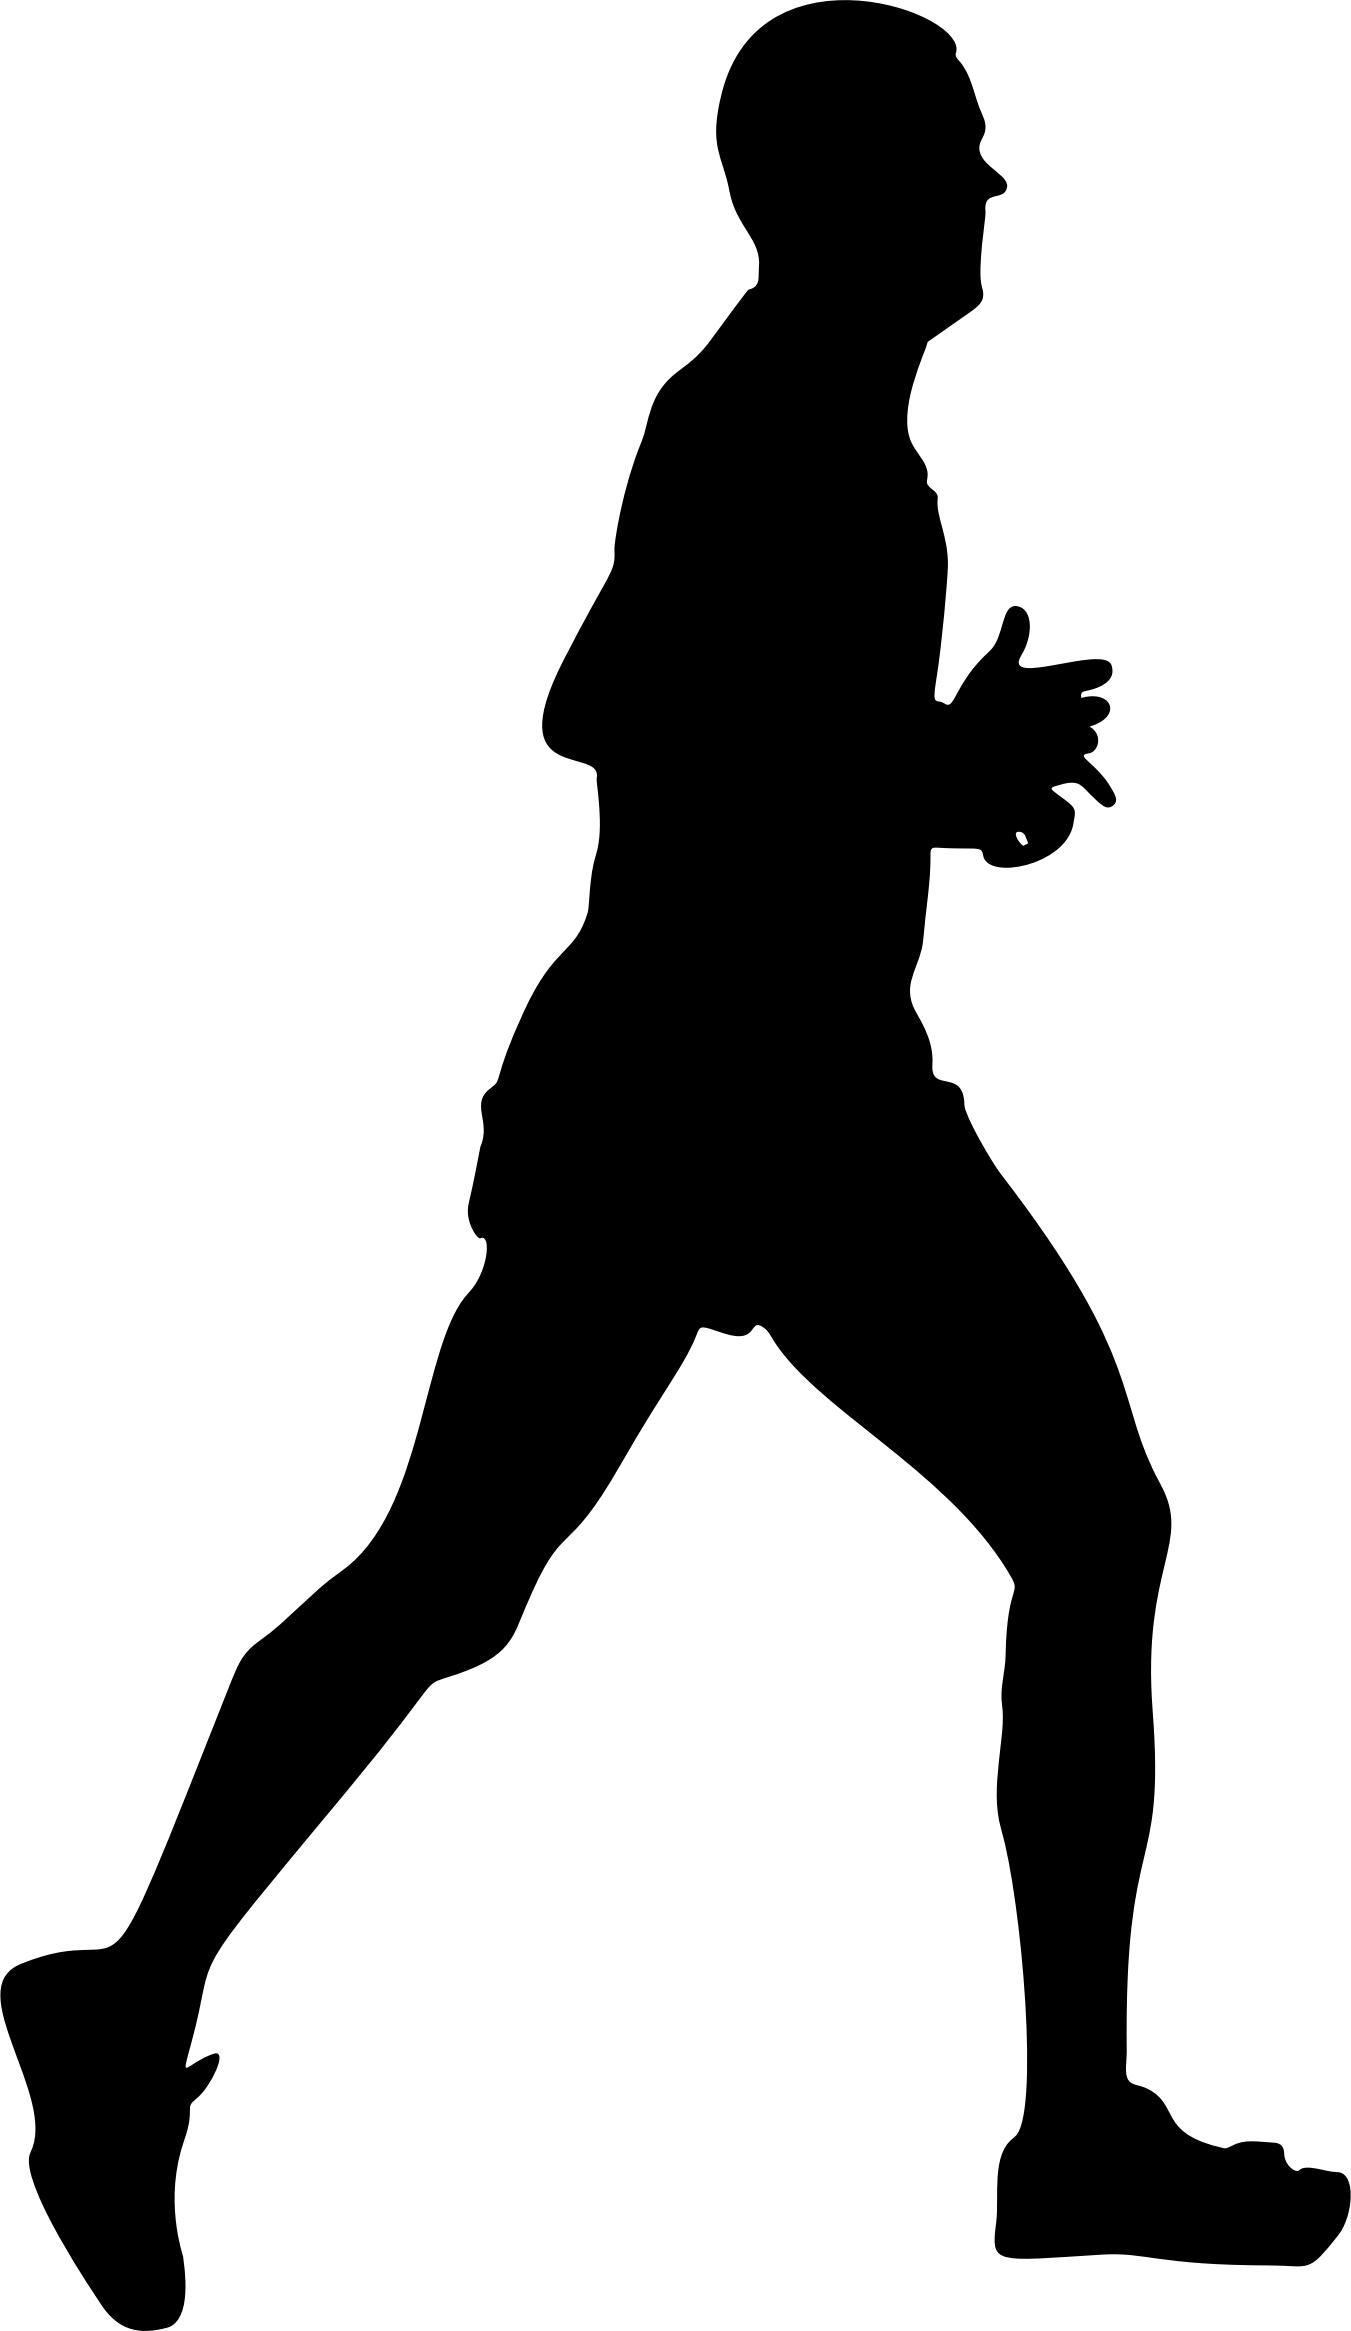 1351x2331 Male Runner Silhouette Icons Png